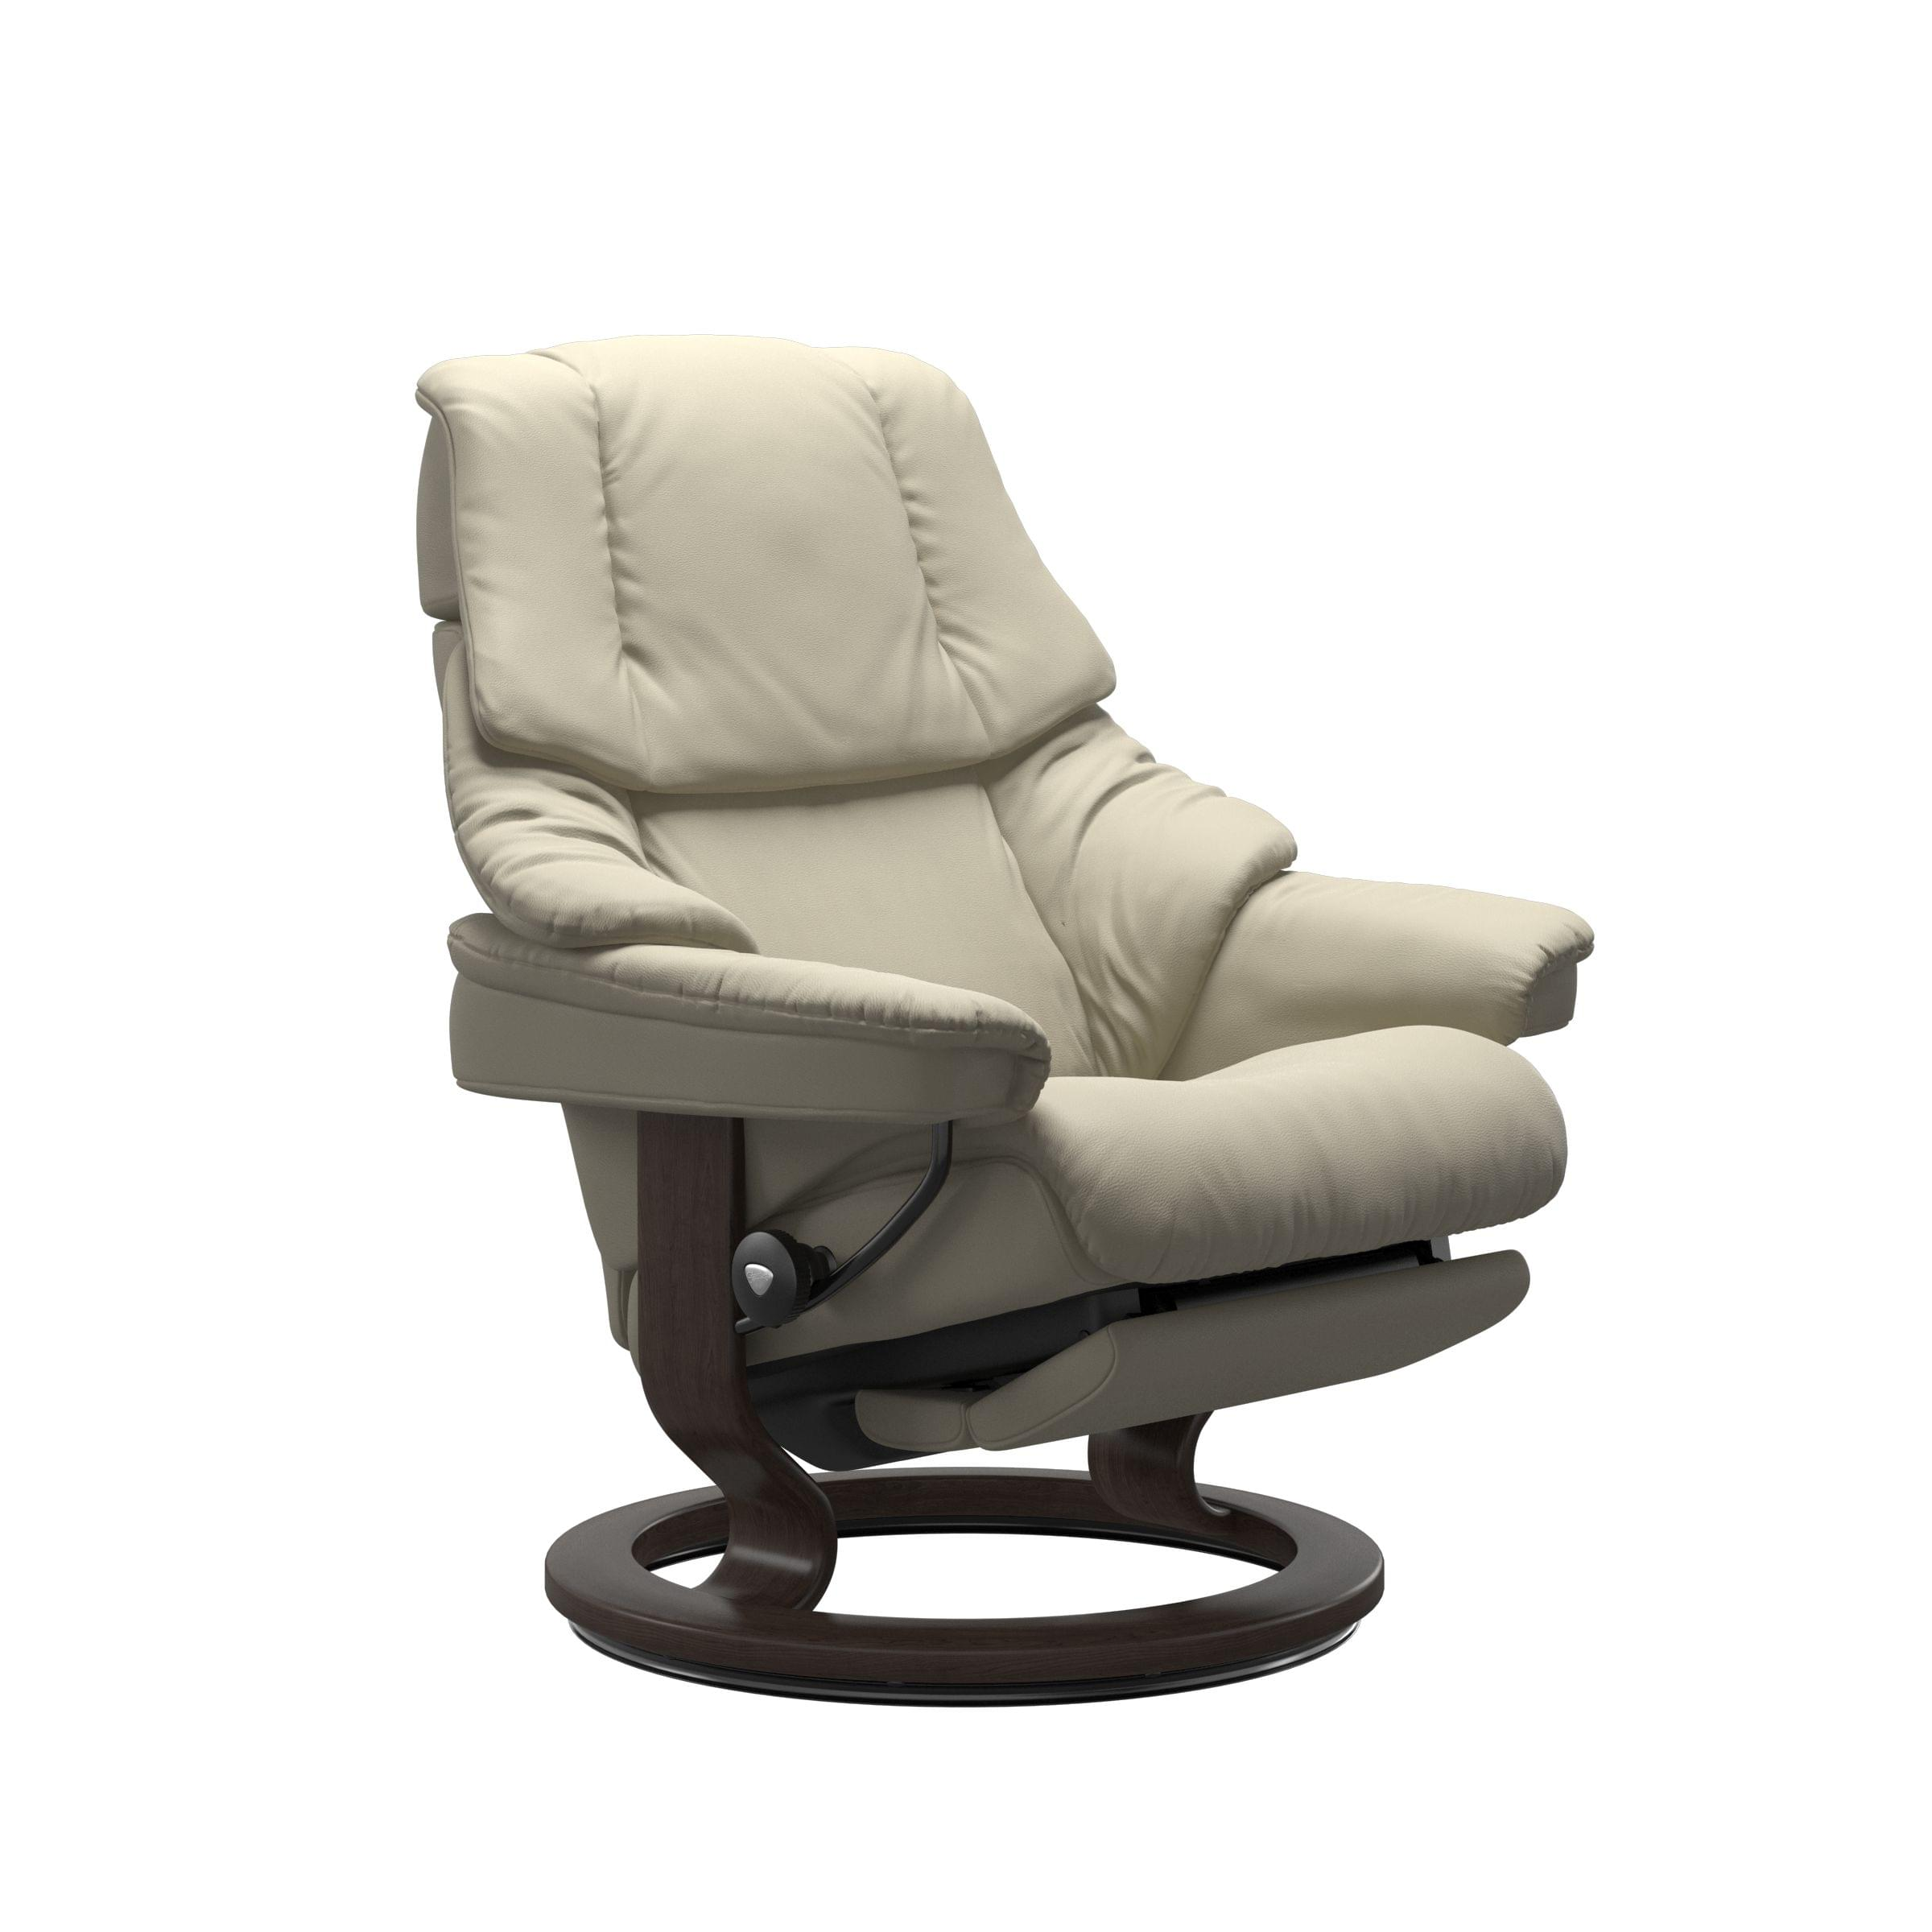 Stressless Reno recliner at Mums Place Furniture Monterey CA